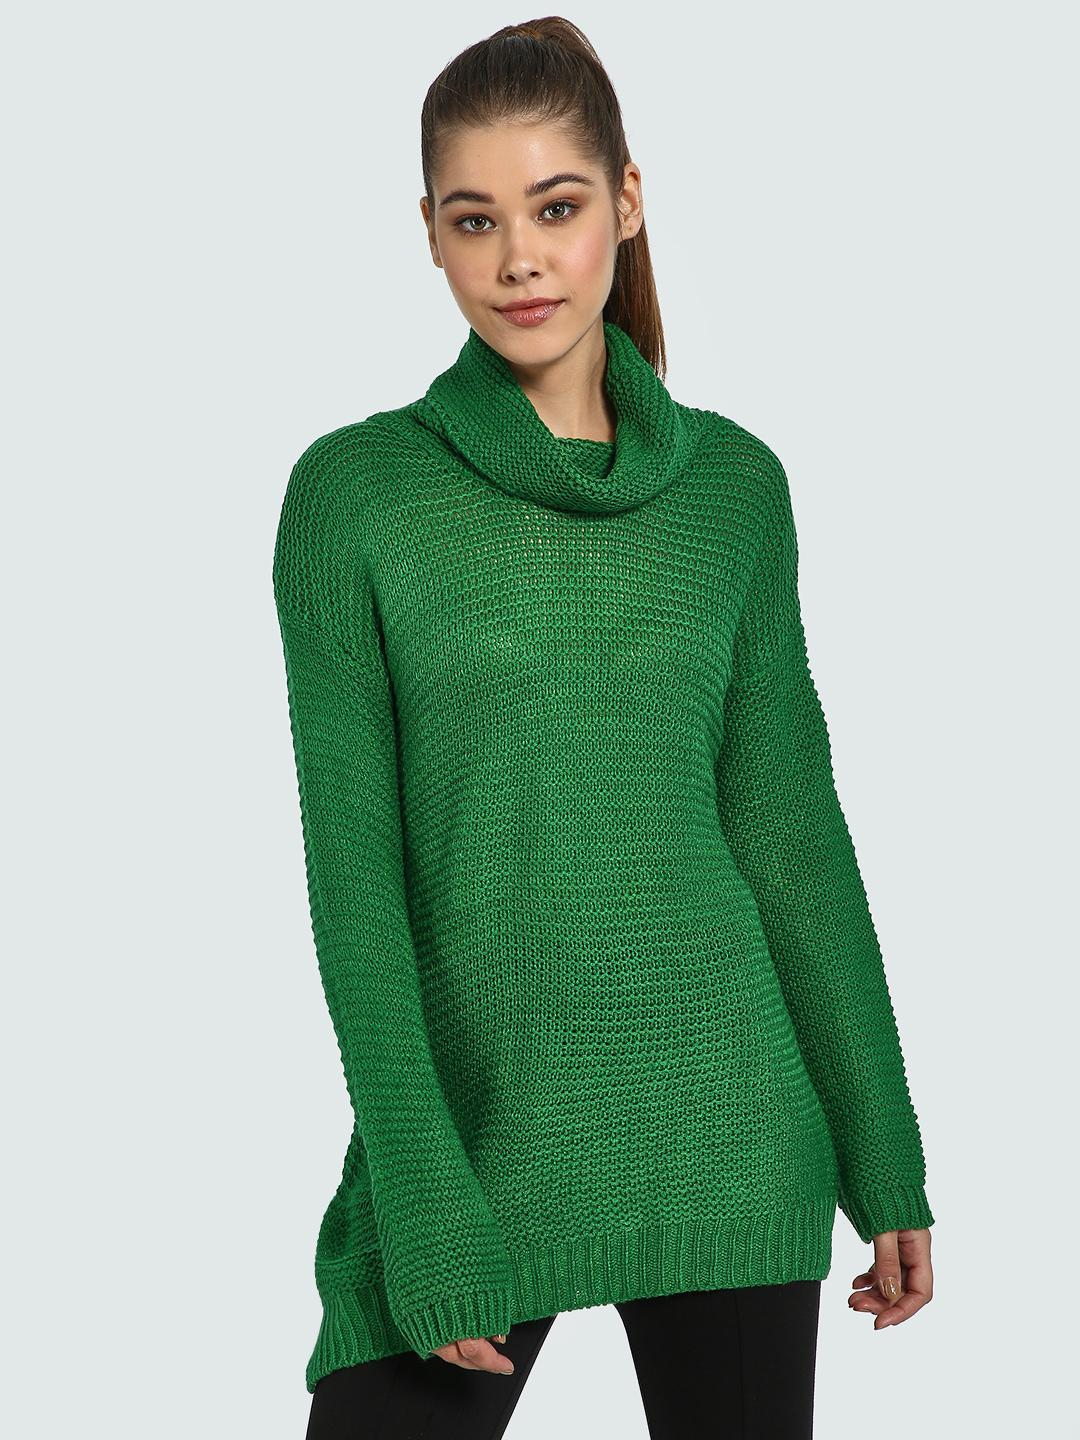 Blue Saint Green Cowl Neck Knitted Longline Pullover 1